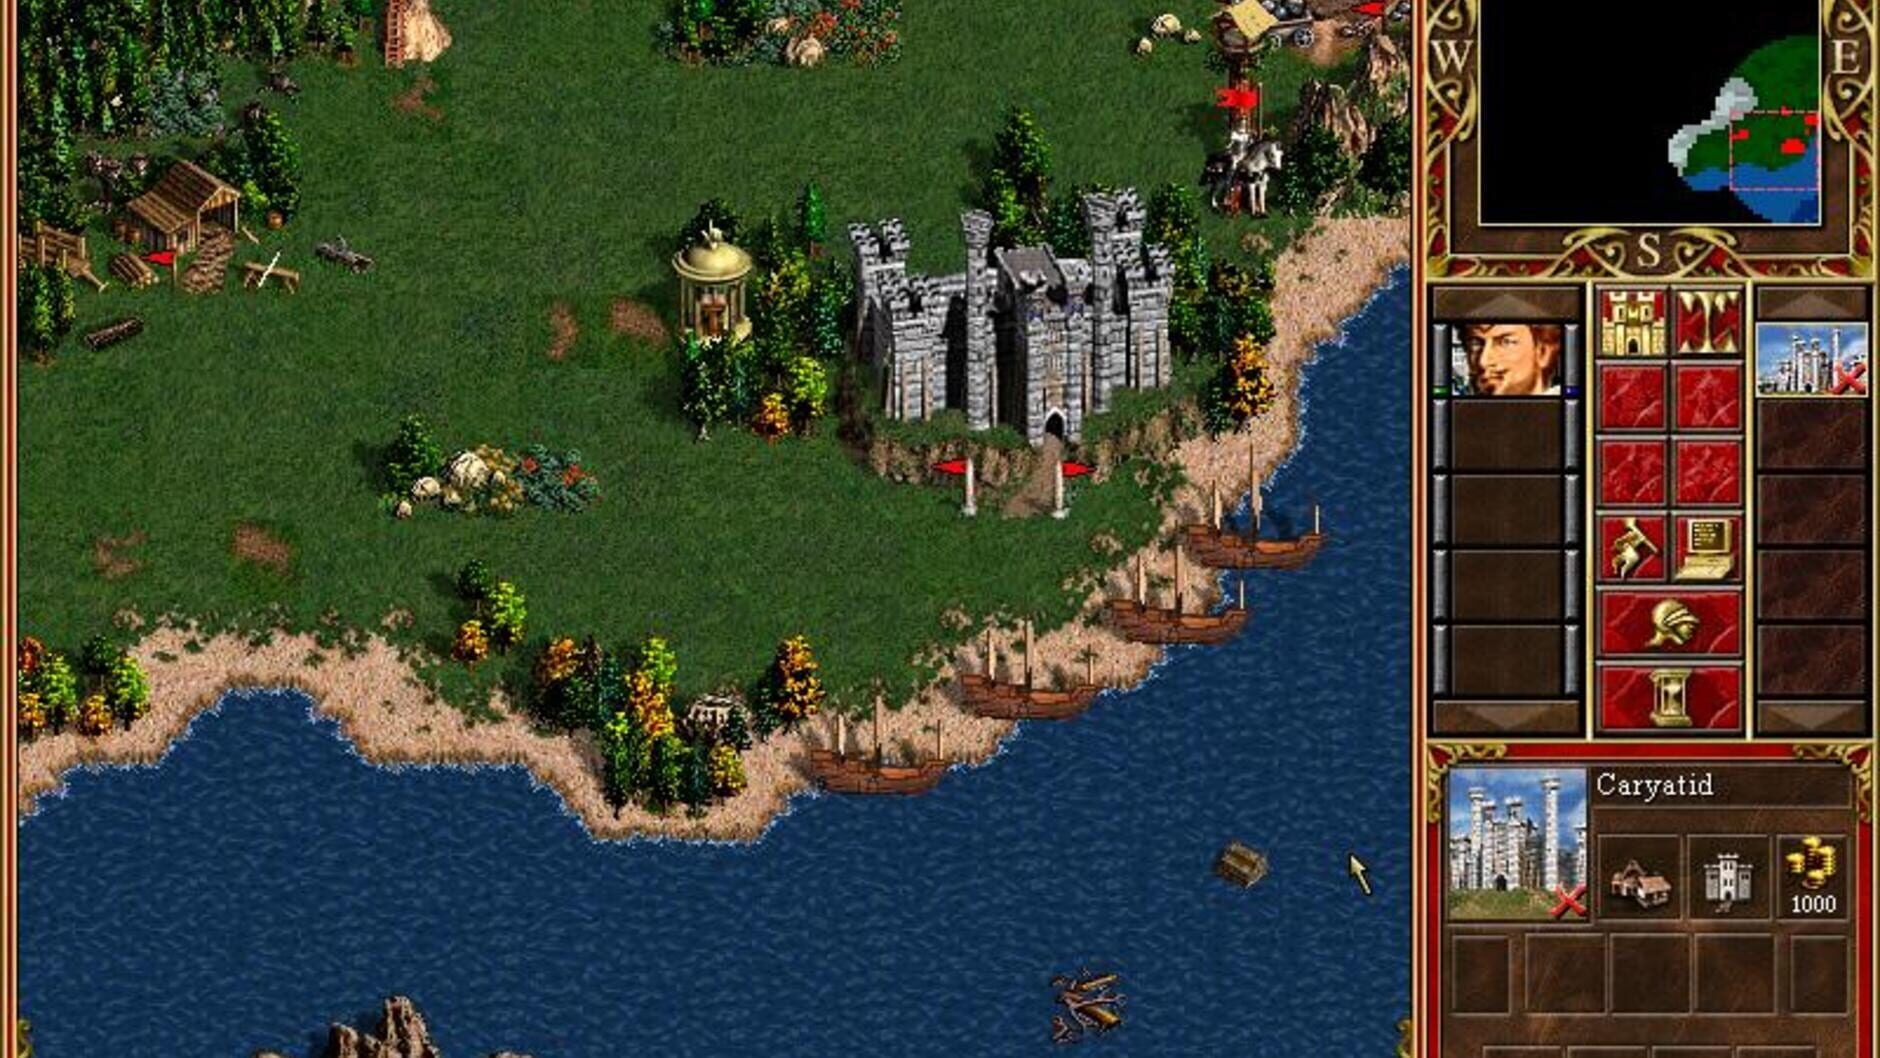 Heroes of Might and Magic III: Armageddon's Blade - 1